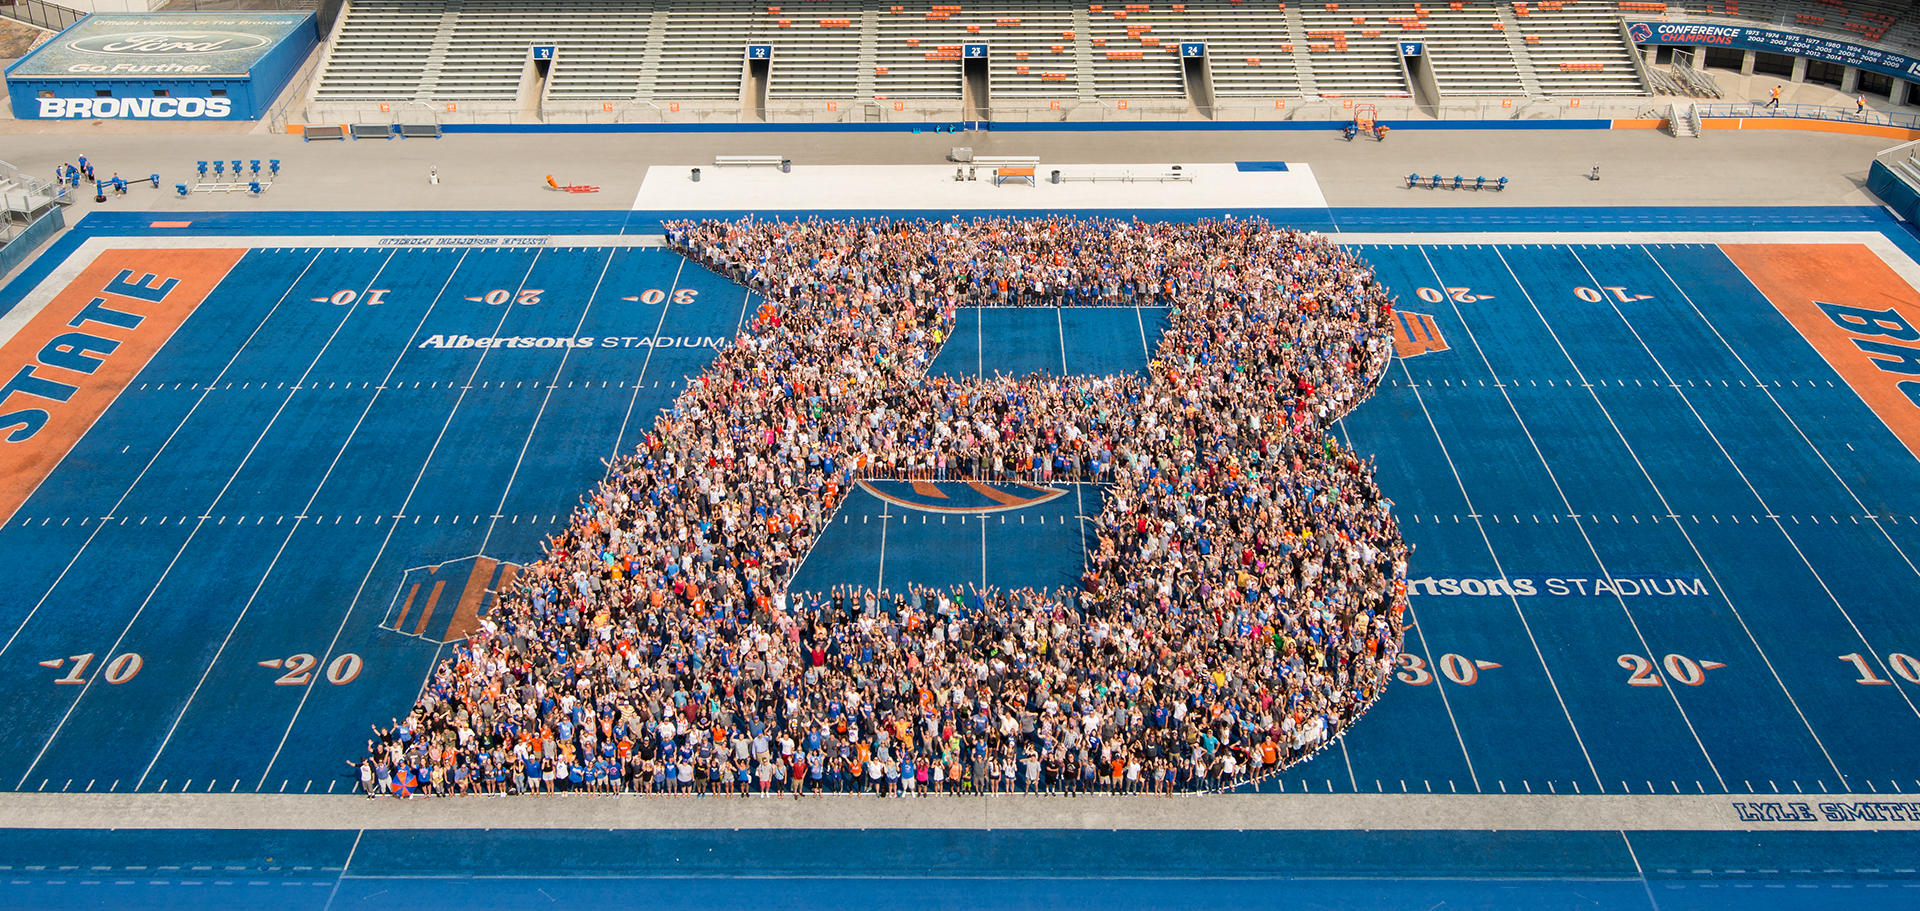 Students organized in the shape of a B on the Boise State football field